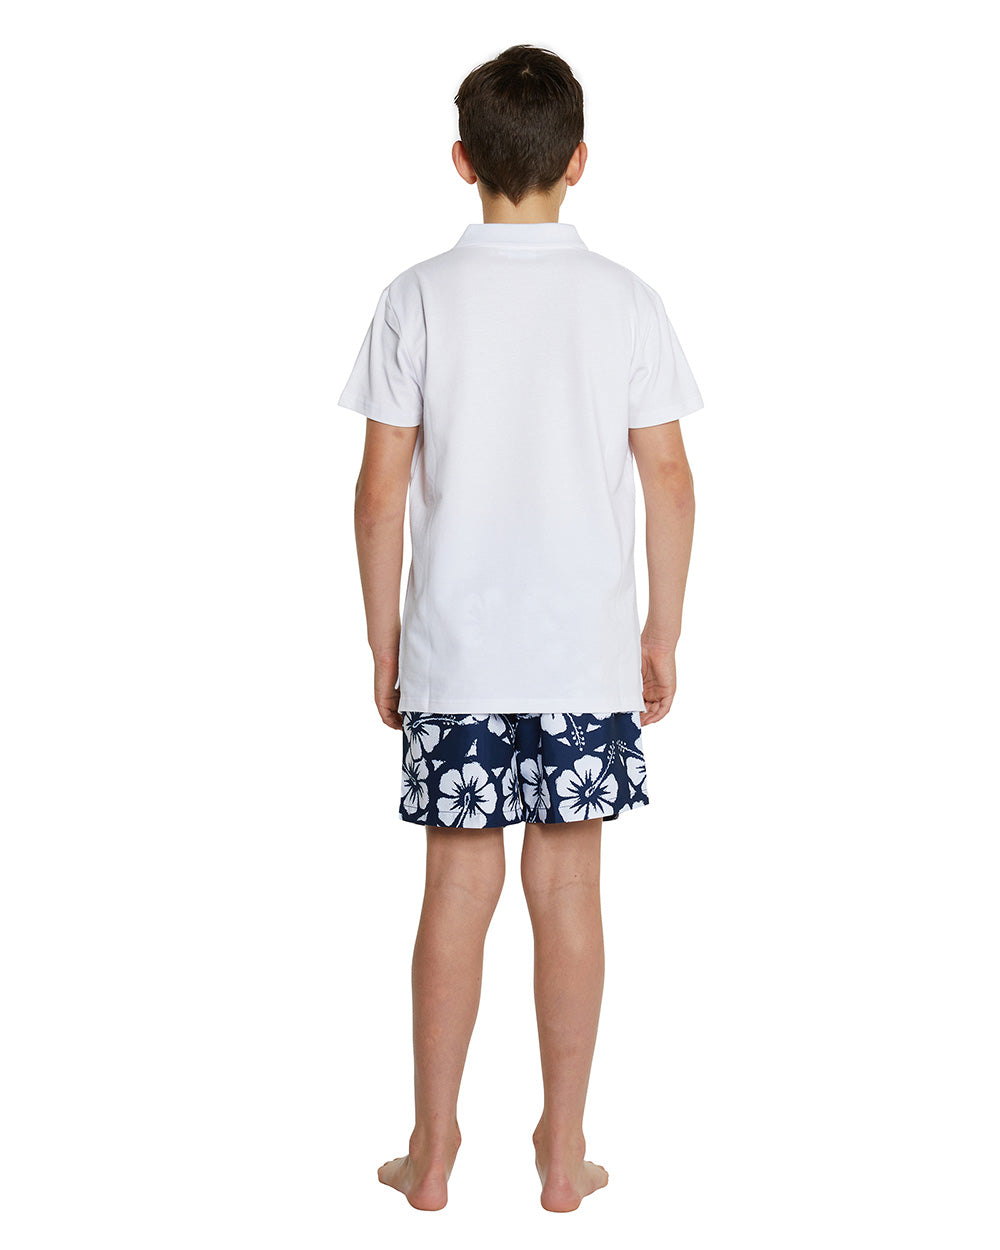 Kids Polo Shirt - White